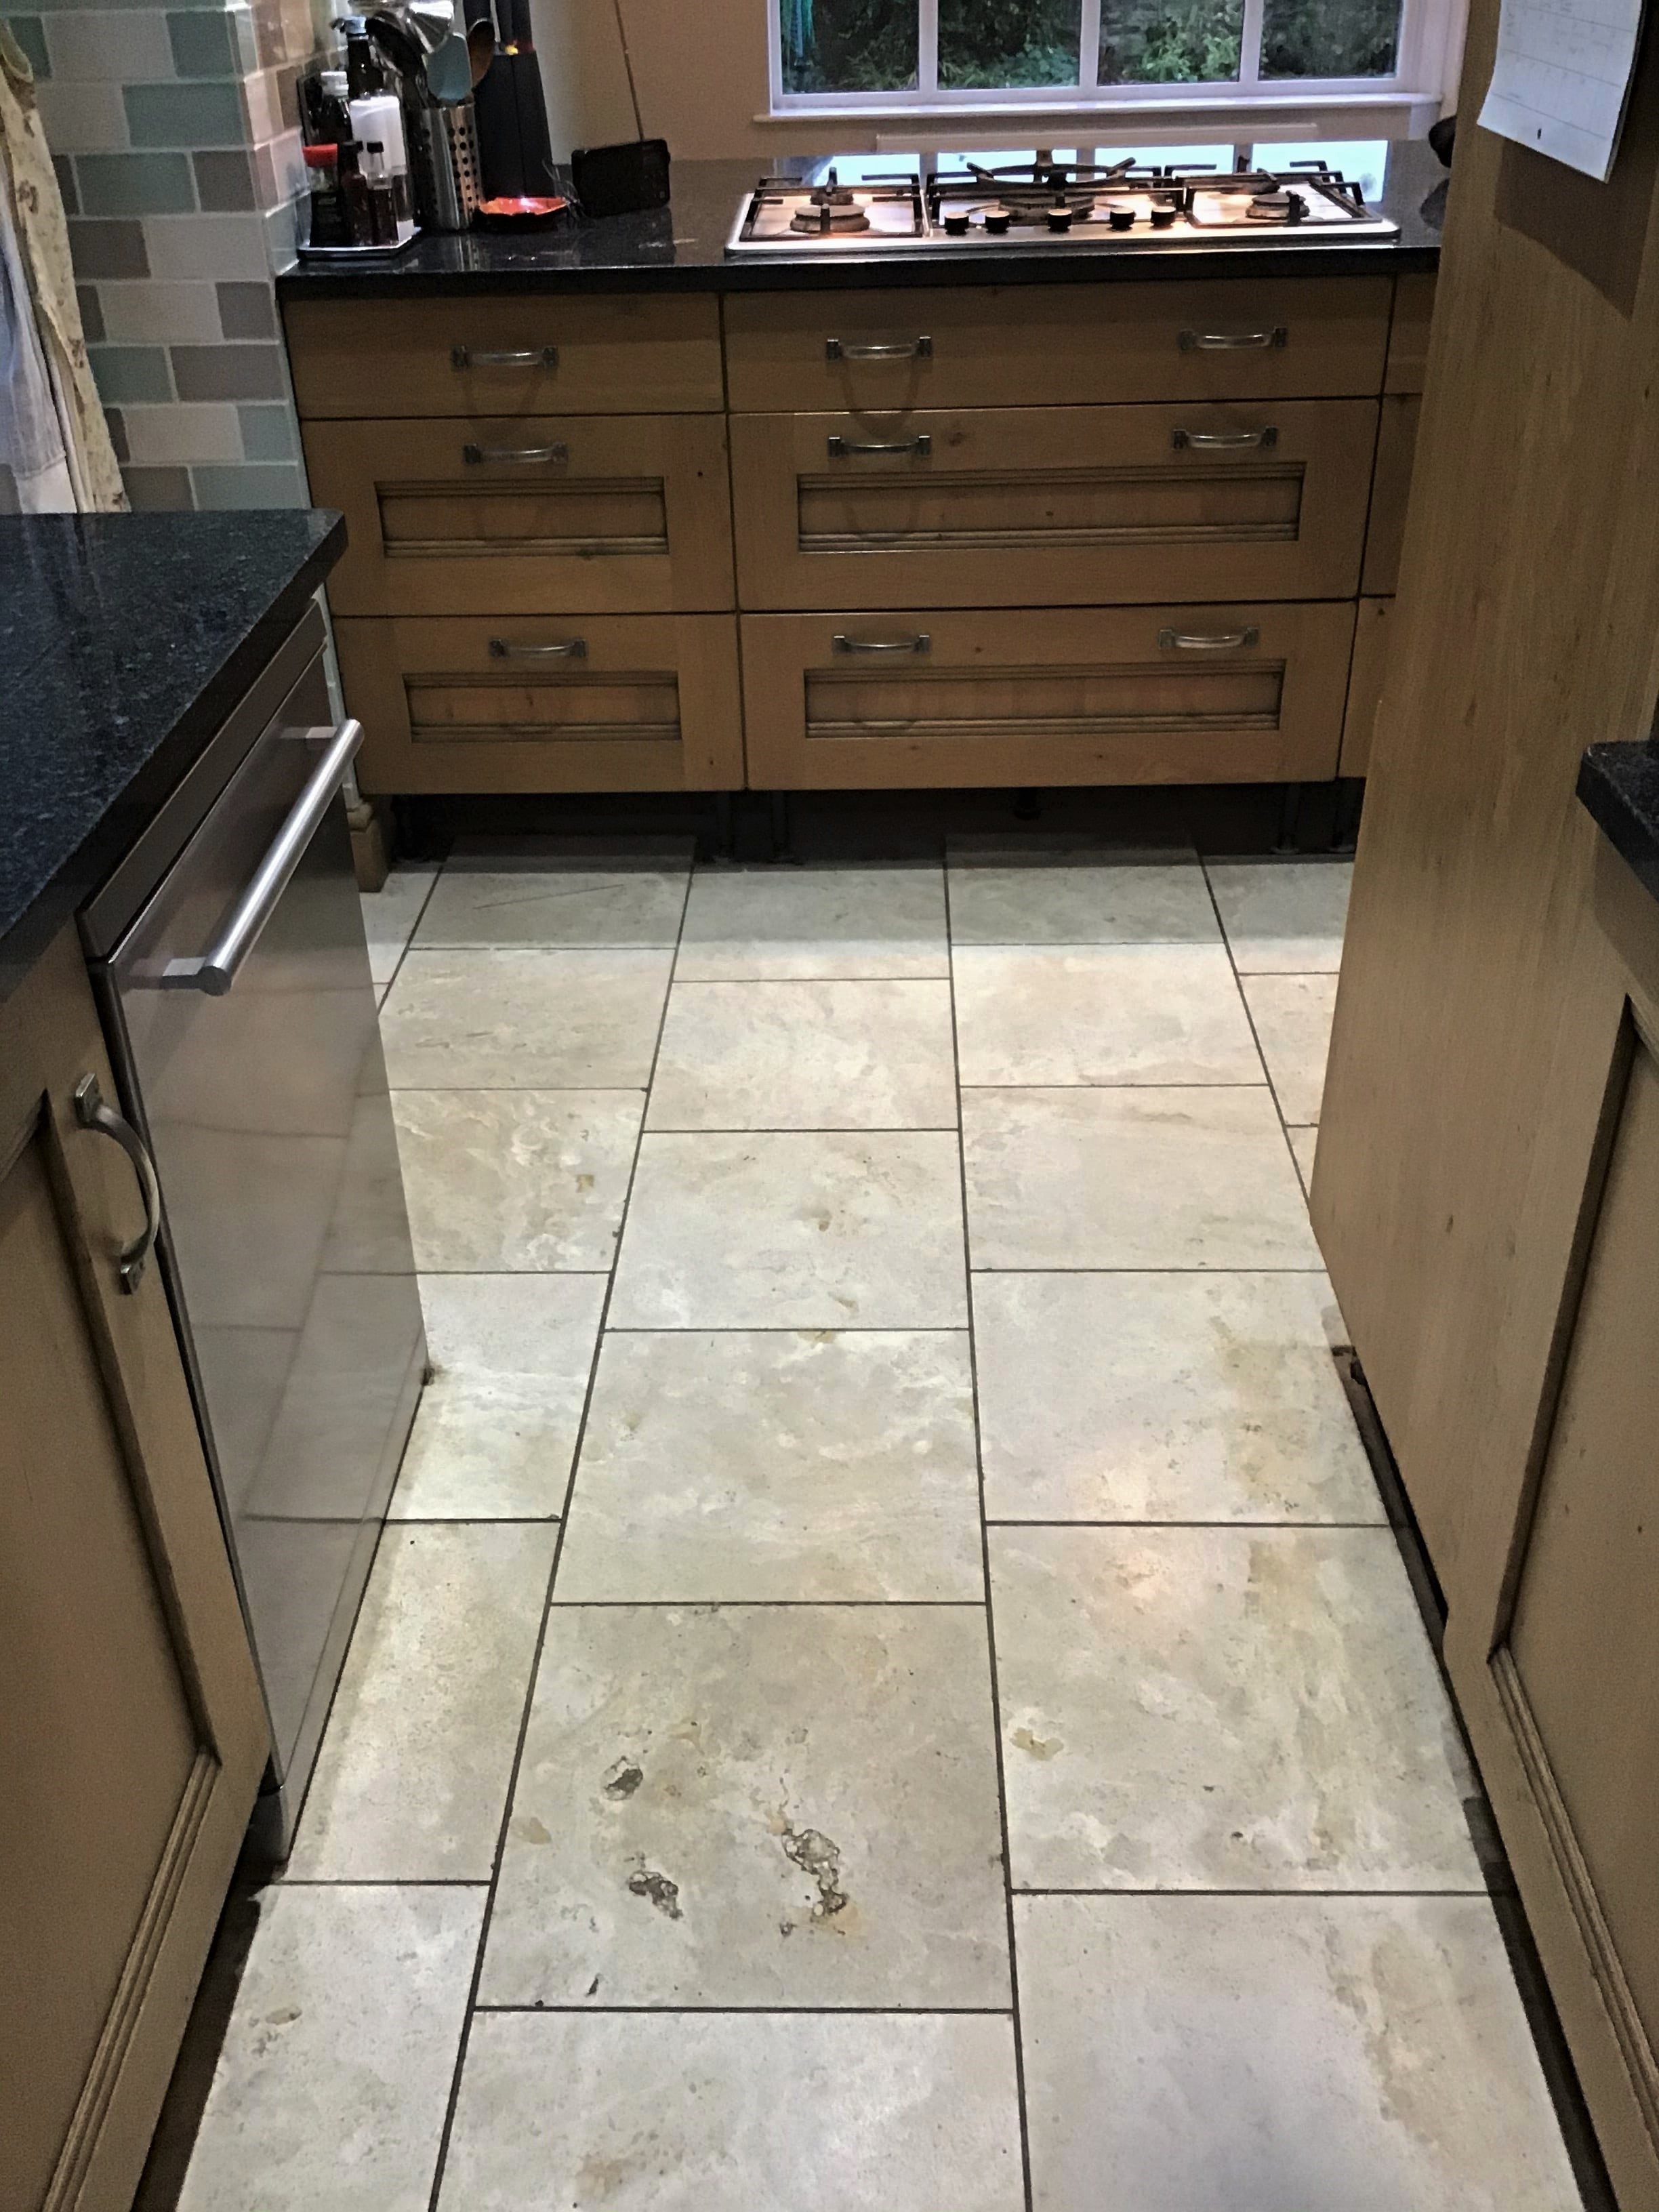 Polished Travertine Kitchen Floor Before Renovation Brixworth